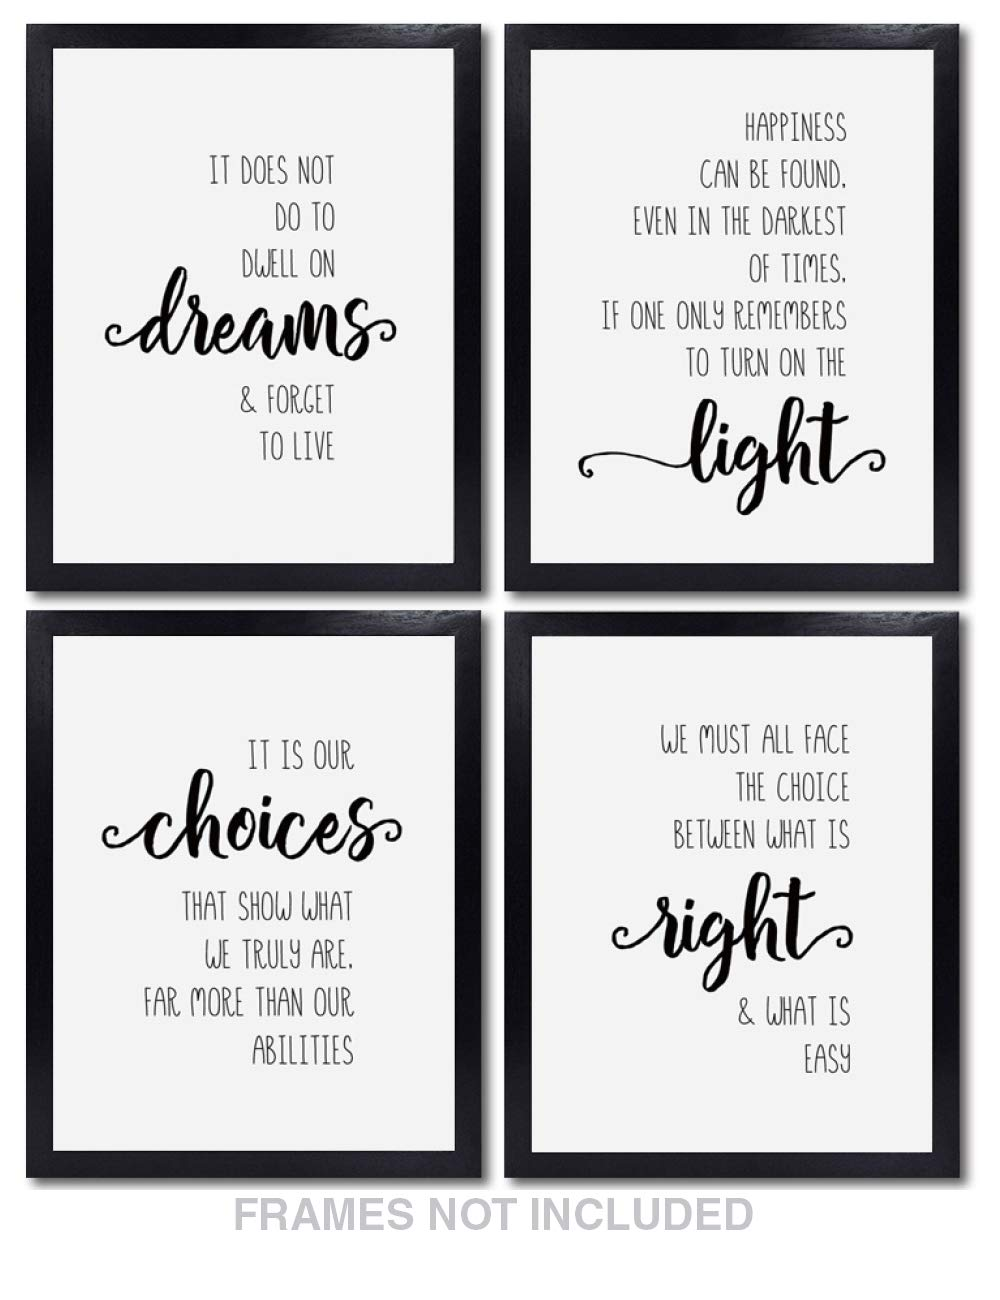 Confetti Fox Harry Potter Wall Decor - Set of 4 Unframed 8x10 White Pearl Art Prints - Dumbledore Quotes and Sayings Themed Art Gift for Home, Bathroom, Bedroom, Kids, Baby - Have everyone inspired with these Harry Potter themed Dumbledore quotes art prints creative decor Unframed, ready to be placed in a favorite frame for display in your home, bathroom, nursery, bedroom, dorm, office SIZE: standard 8 x 10 size fits perfectly in any space large or small, grouped with the others or hung separately - wall-art, living-room-decor, living-room - 613n8HW8KxL -